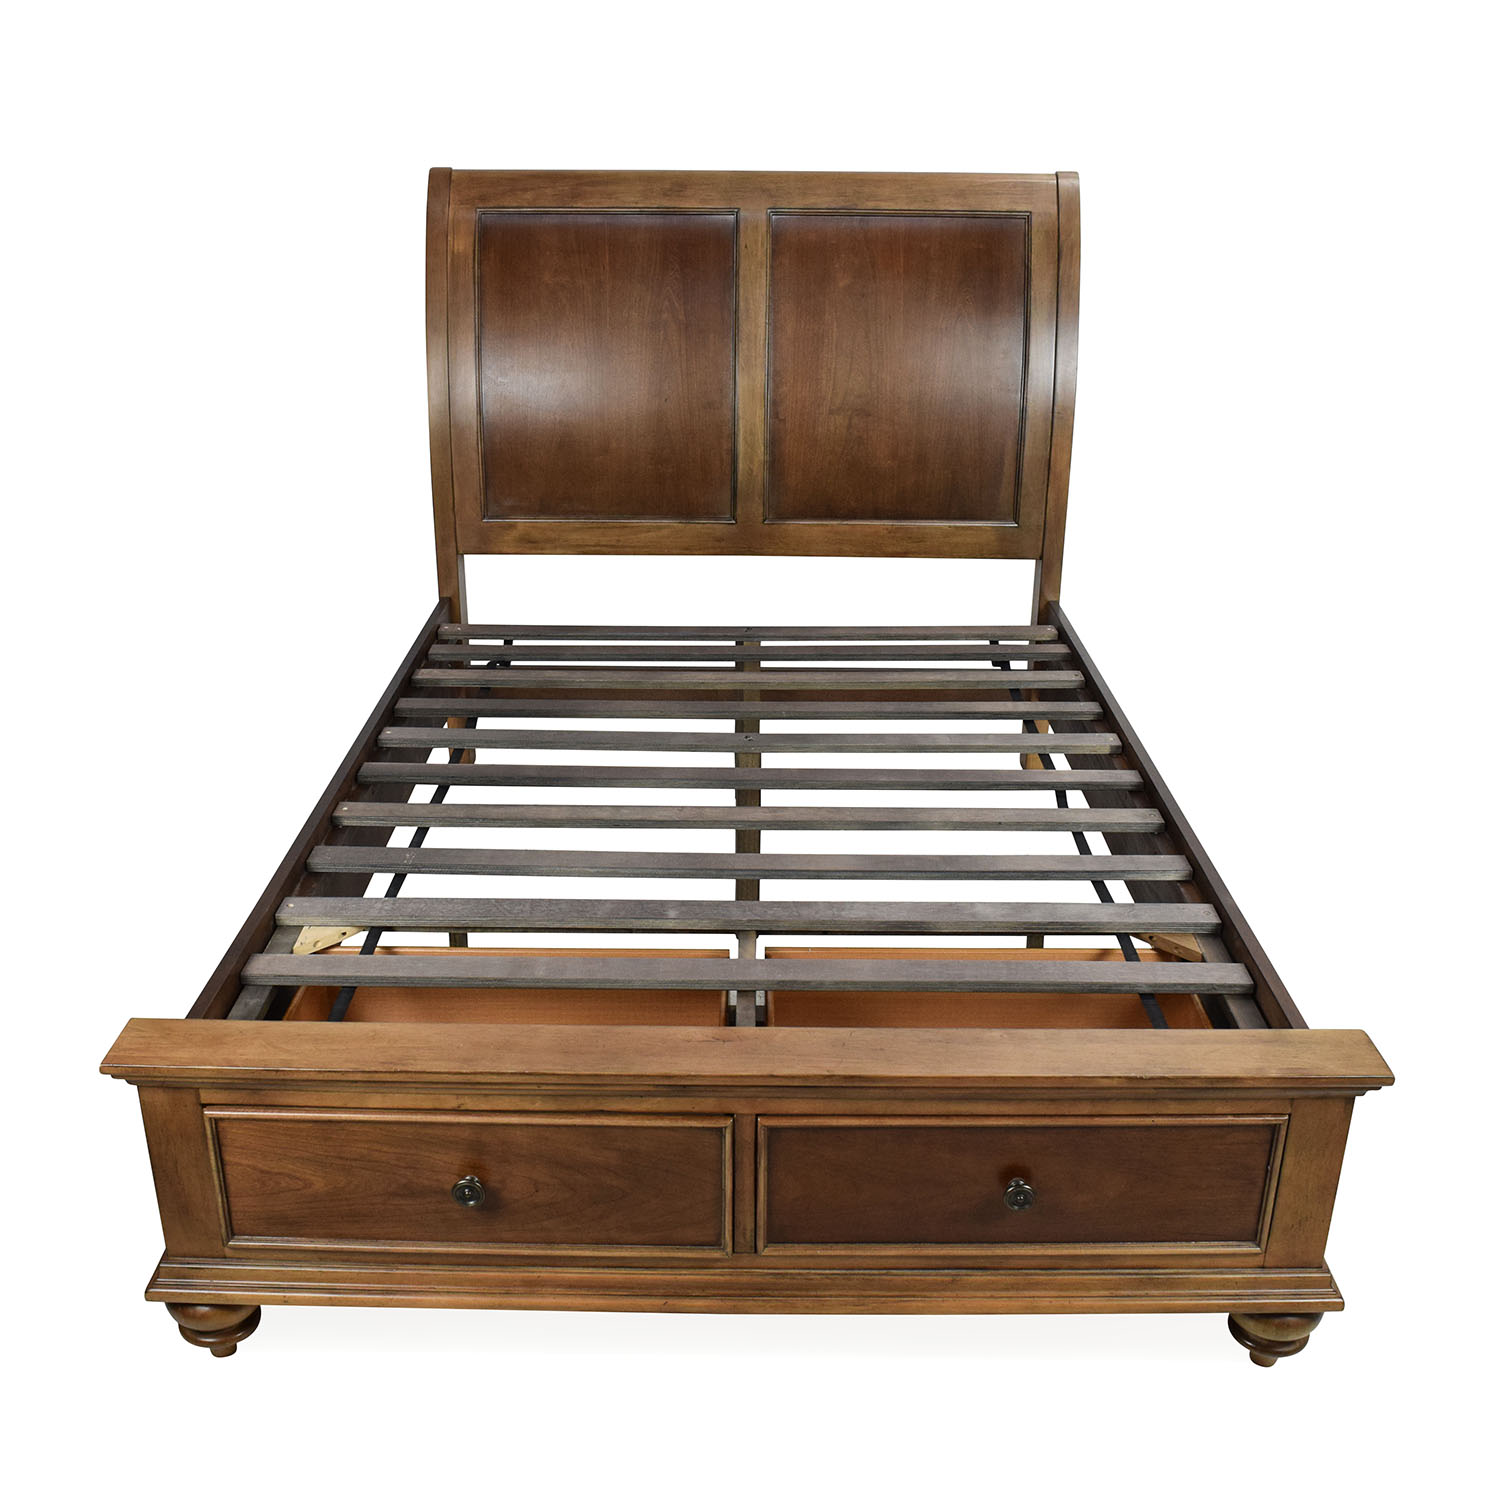 Raymour and Flanigan Raymour & Flanigan Rustic Brown Full-Sized Storage Bed Beds